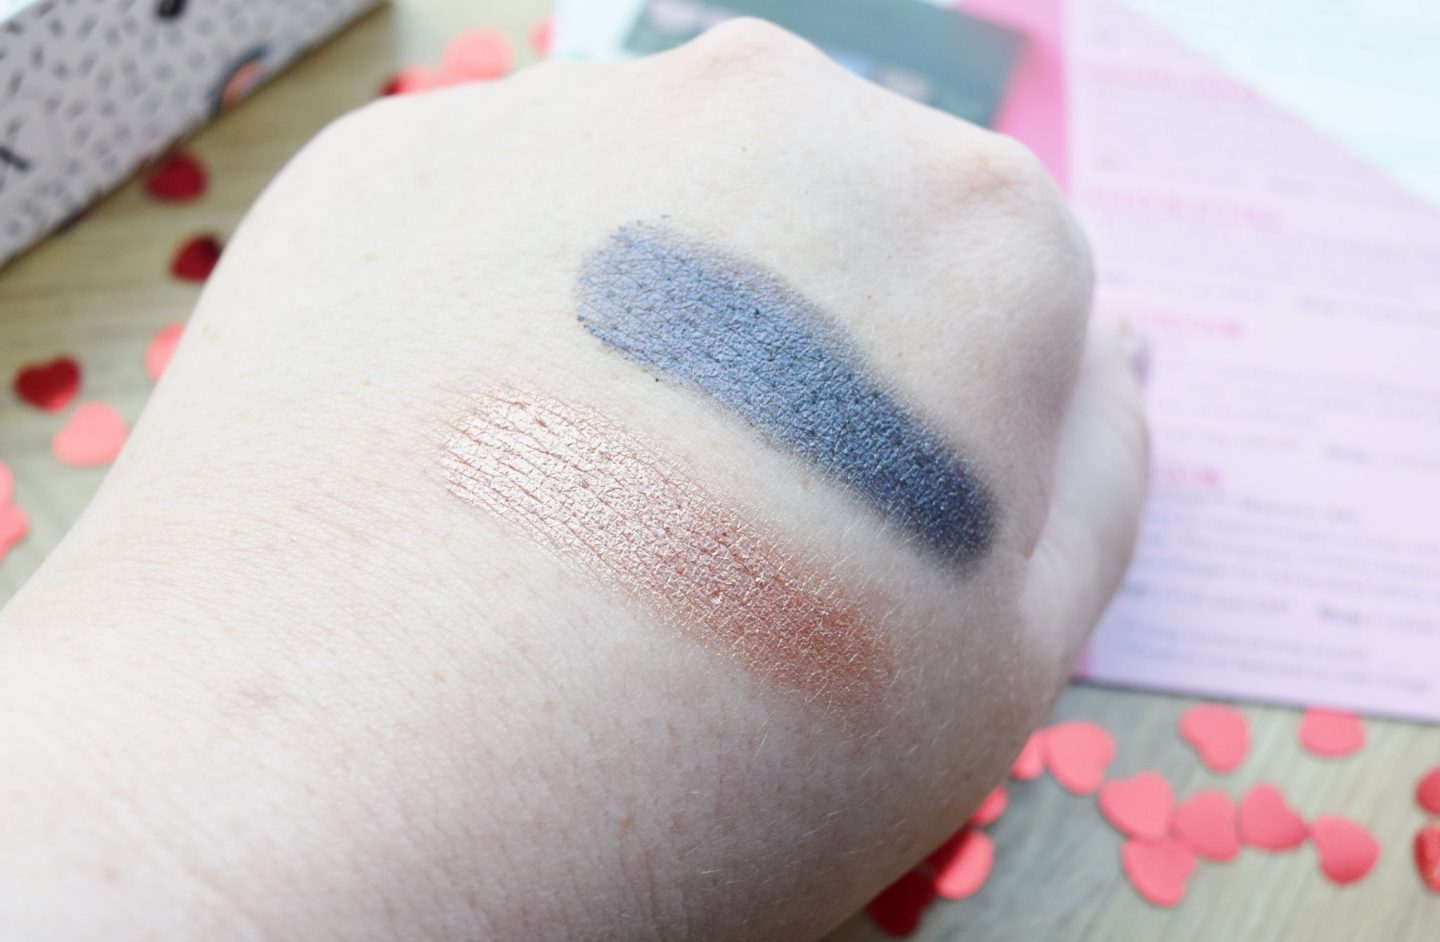 Sleek MakeUP Divine Eyeshadow Palette swatches